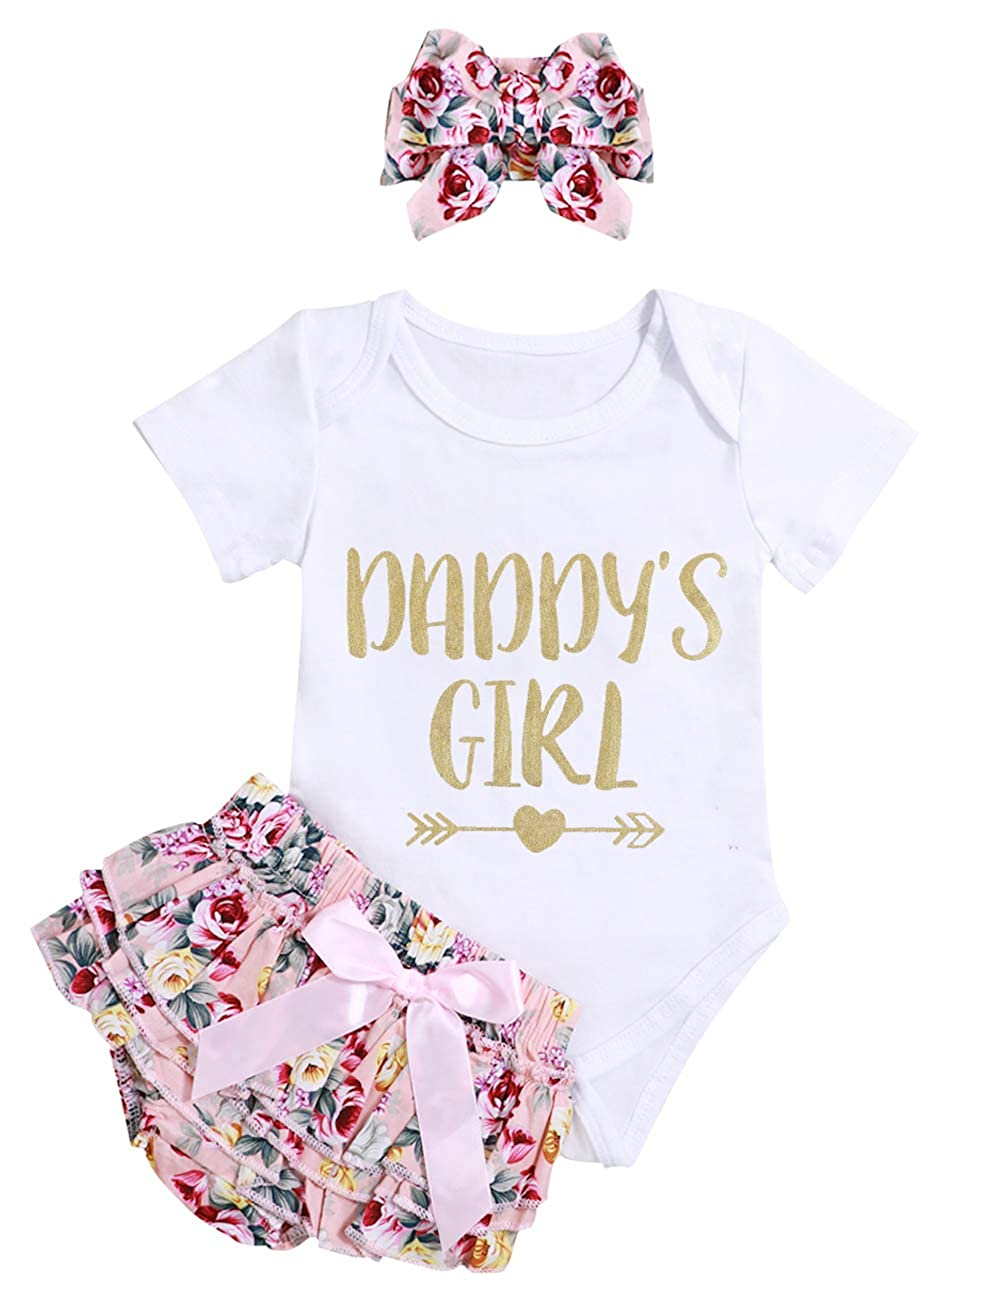 0895838a2 Amazon.com  Infant Baby Girl Clothes Daddy s Girl Letter Print ...